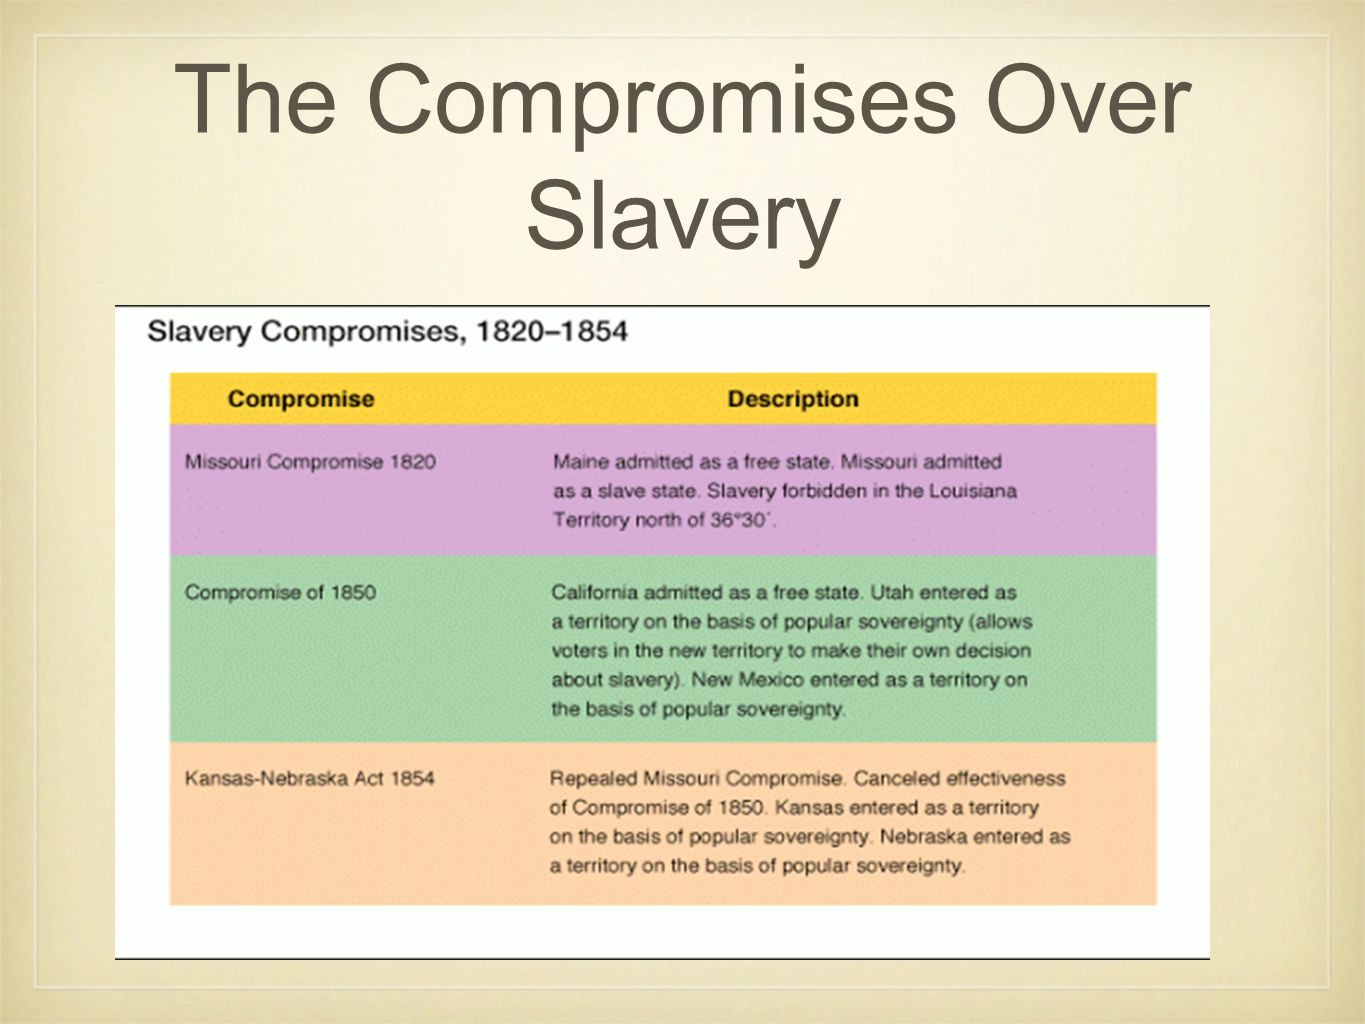 The Compromises Over Slavery